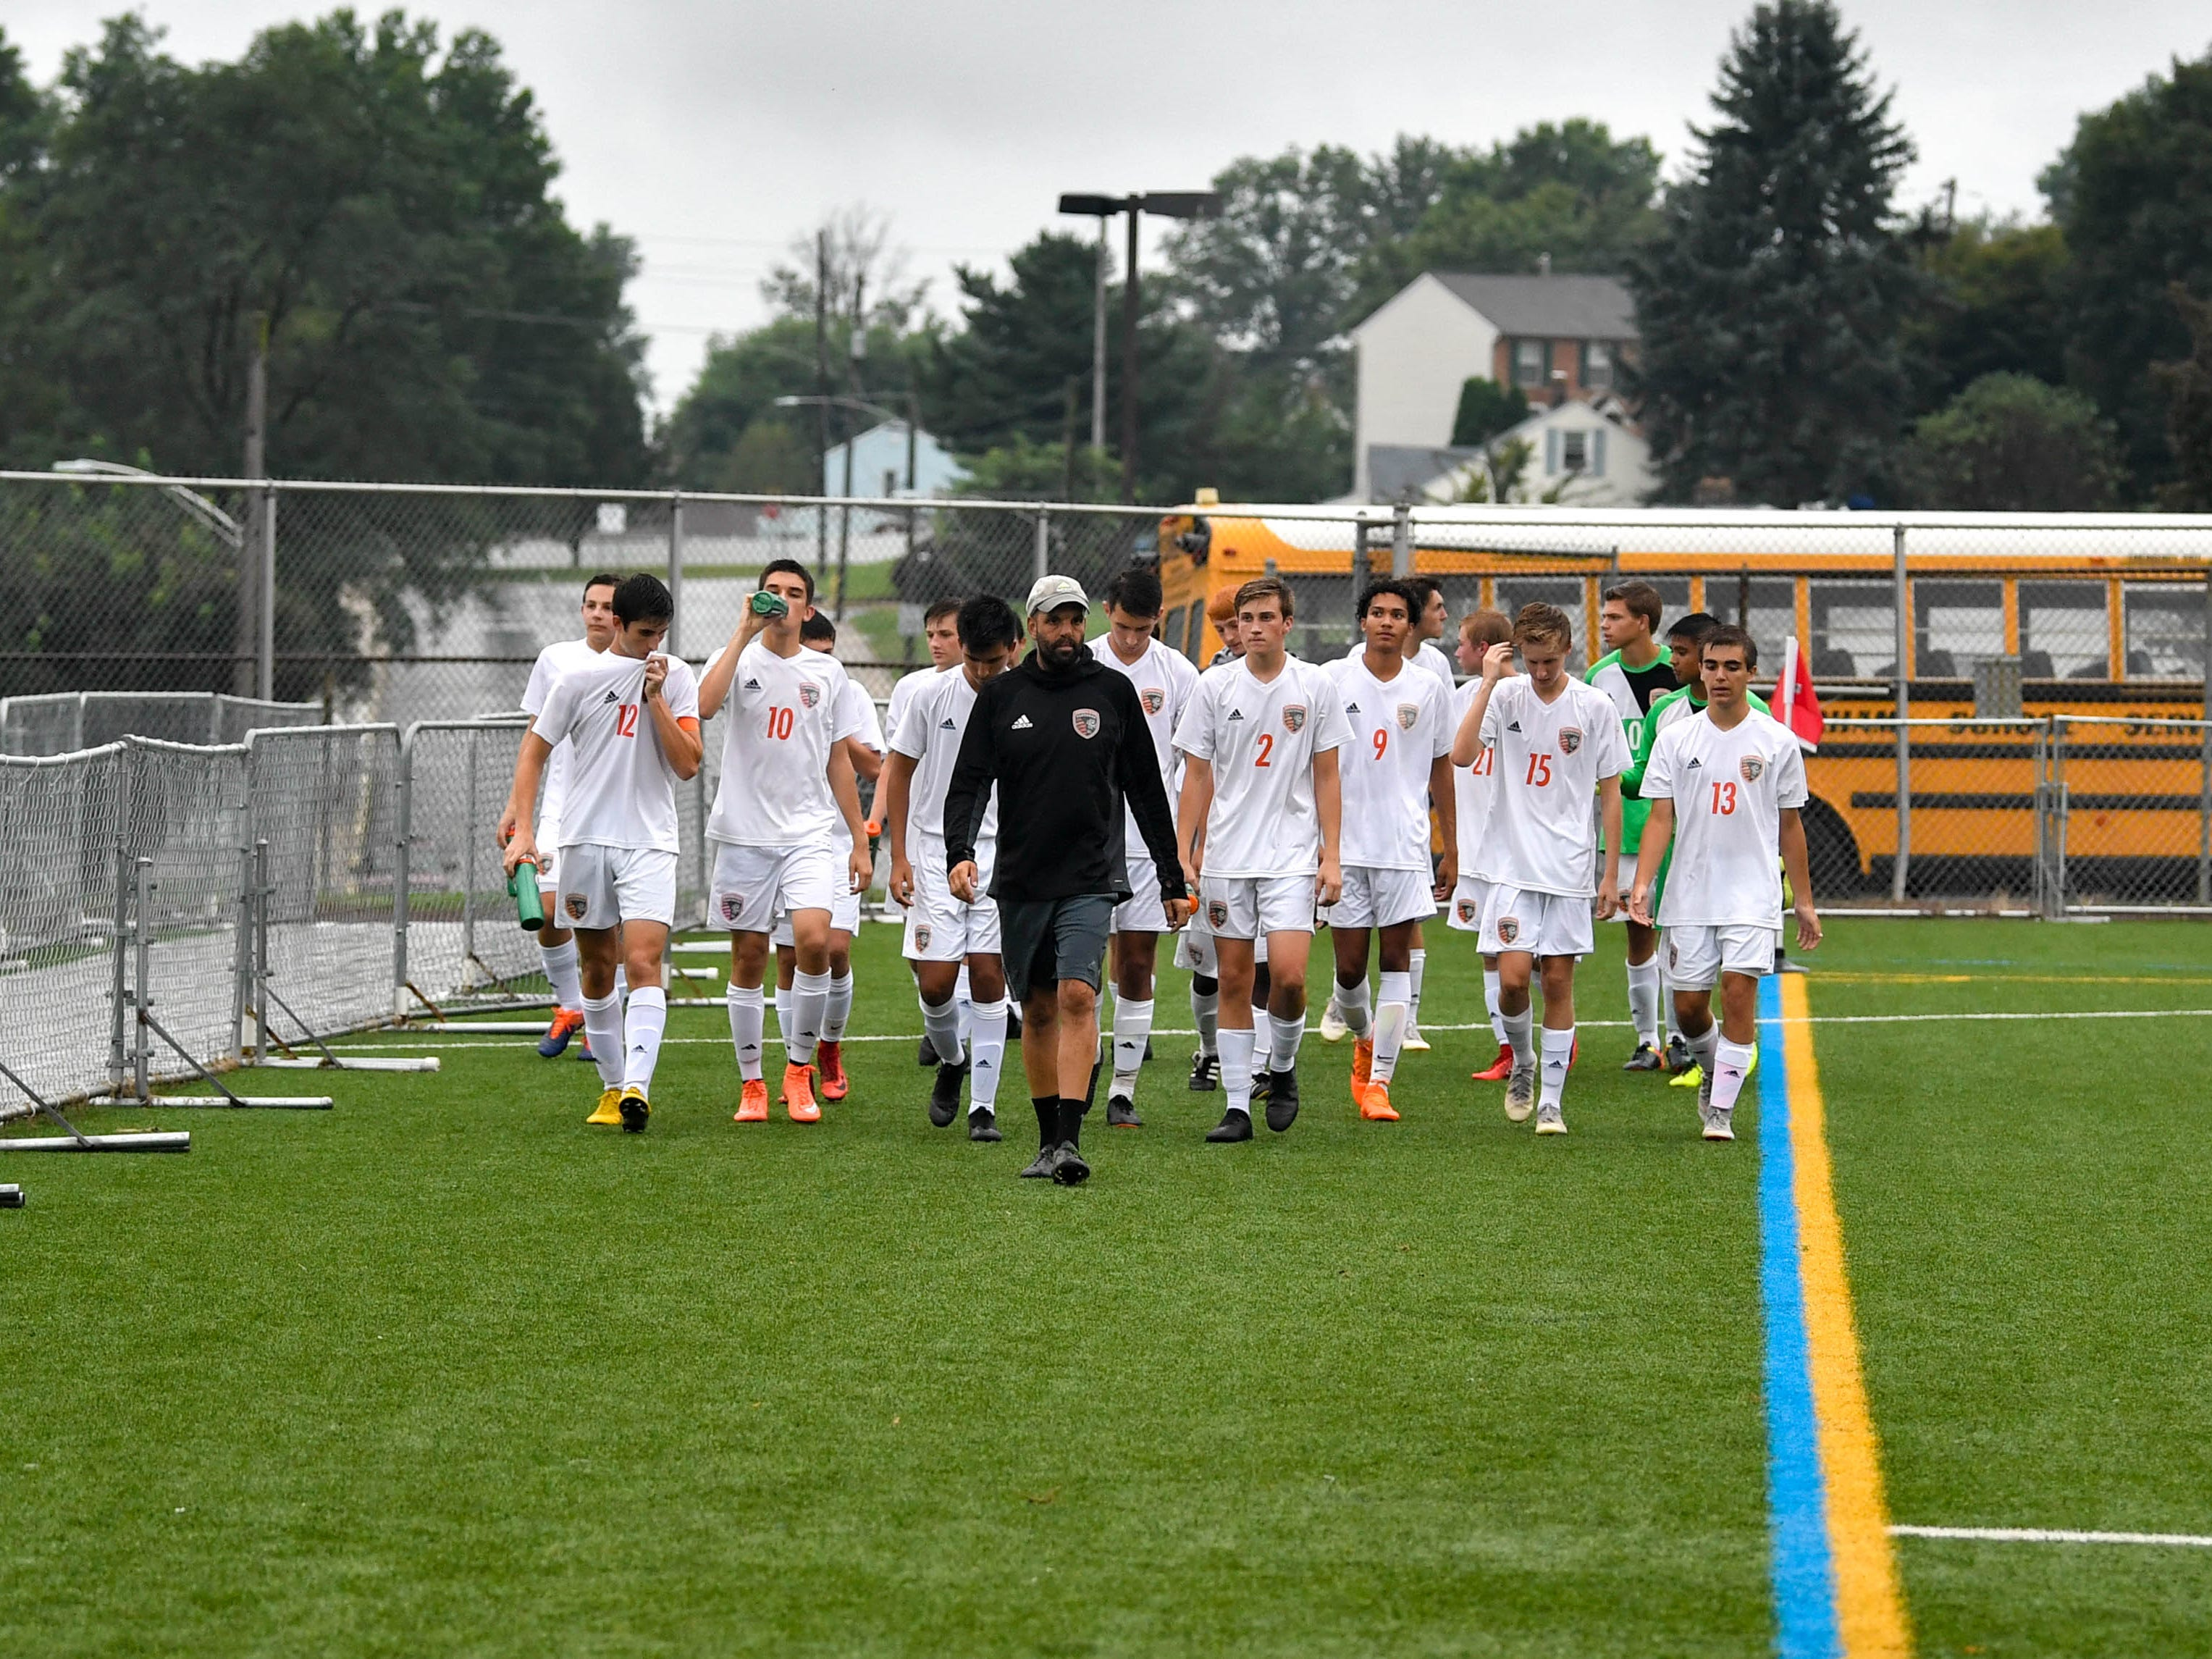 The Panthers head back to the bench as halftime ends during the Red Lion vs. Central York soccer game September 11, 2018.